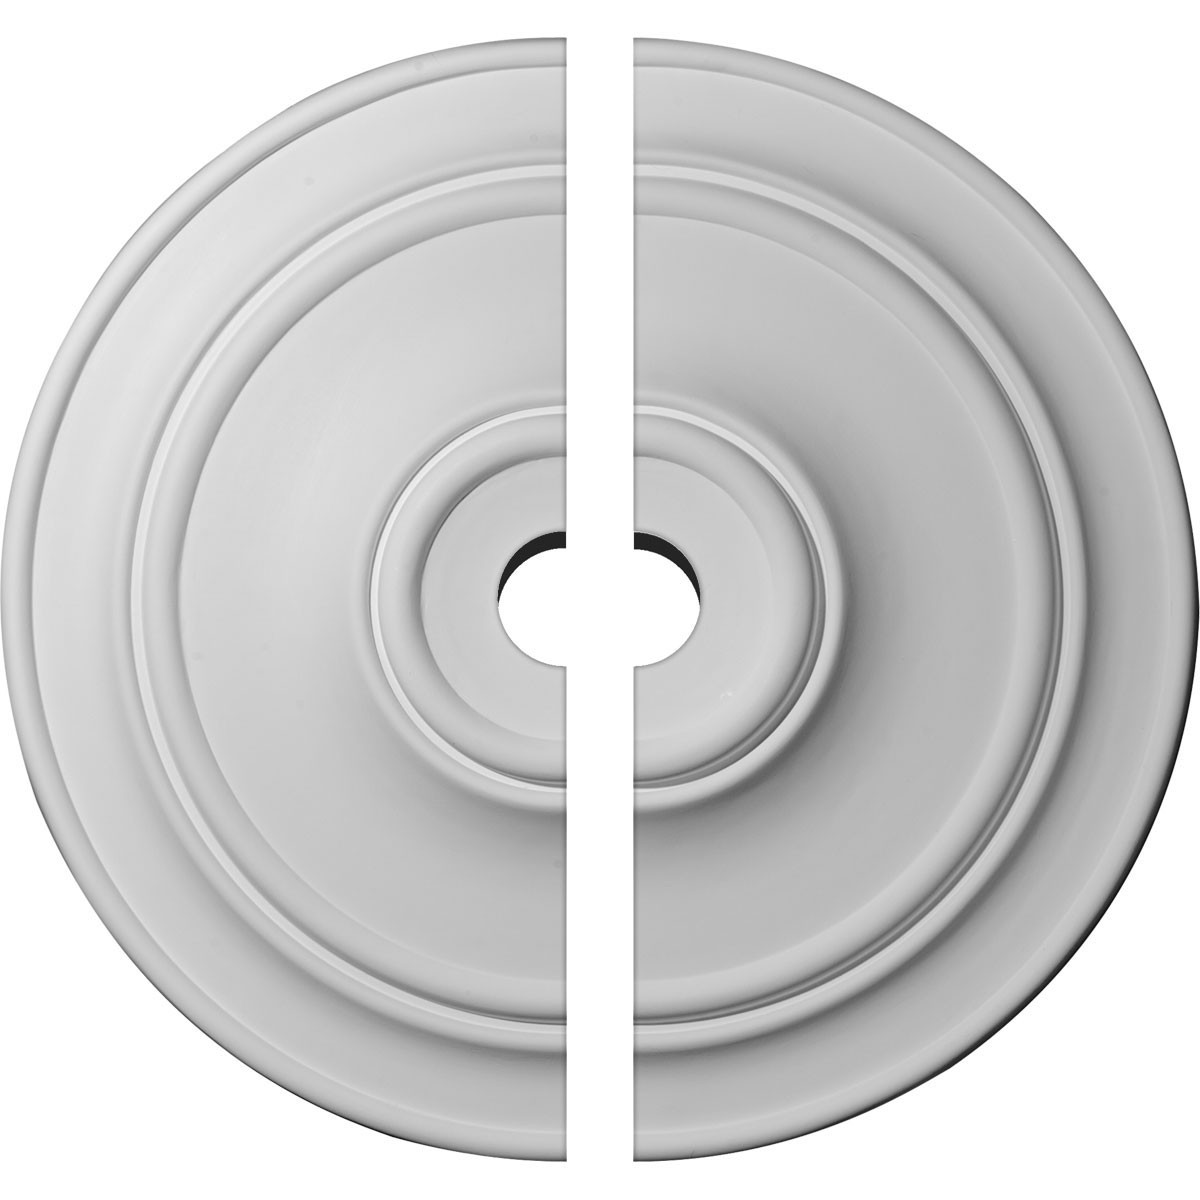 """EM-CM40CL2-05000 - 40 1/4""""OD x 5""""ID x 3 1/8""""P Small Classic Ceiling Medallion, Two Piece (Fits Canopies up to 10"""")"""